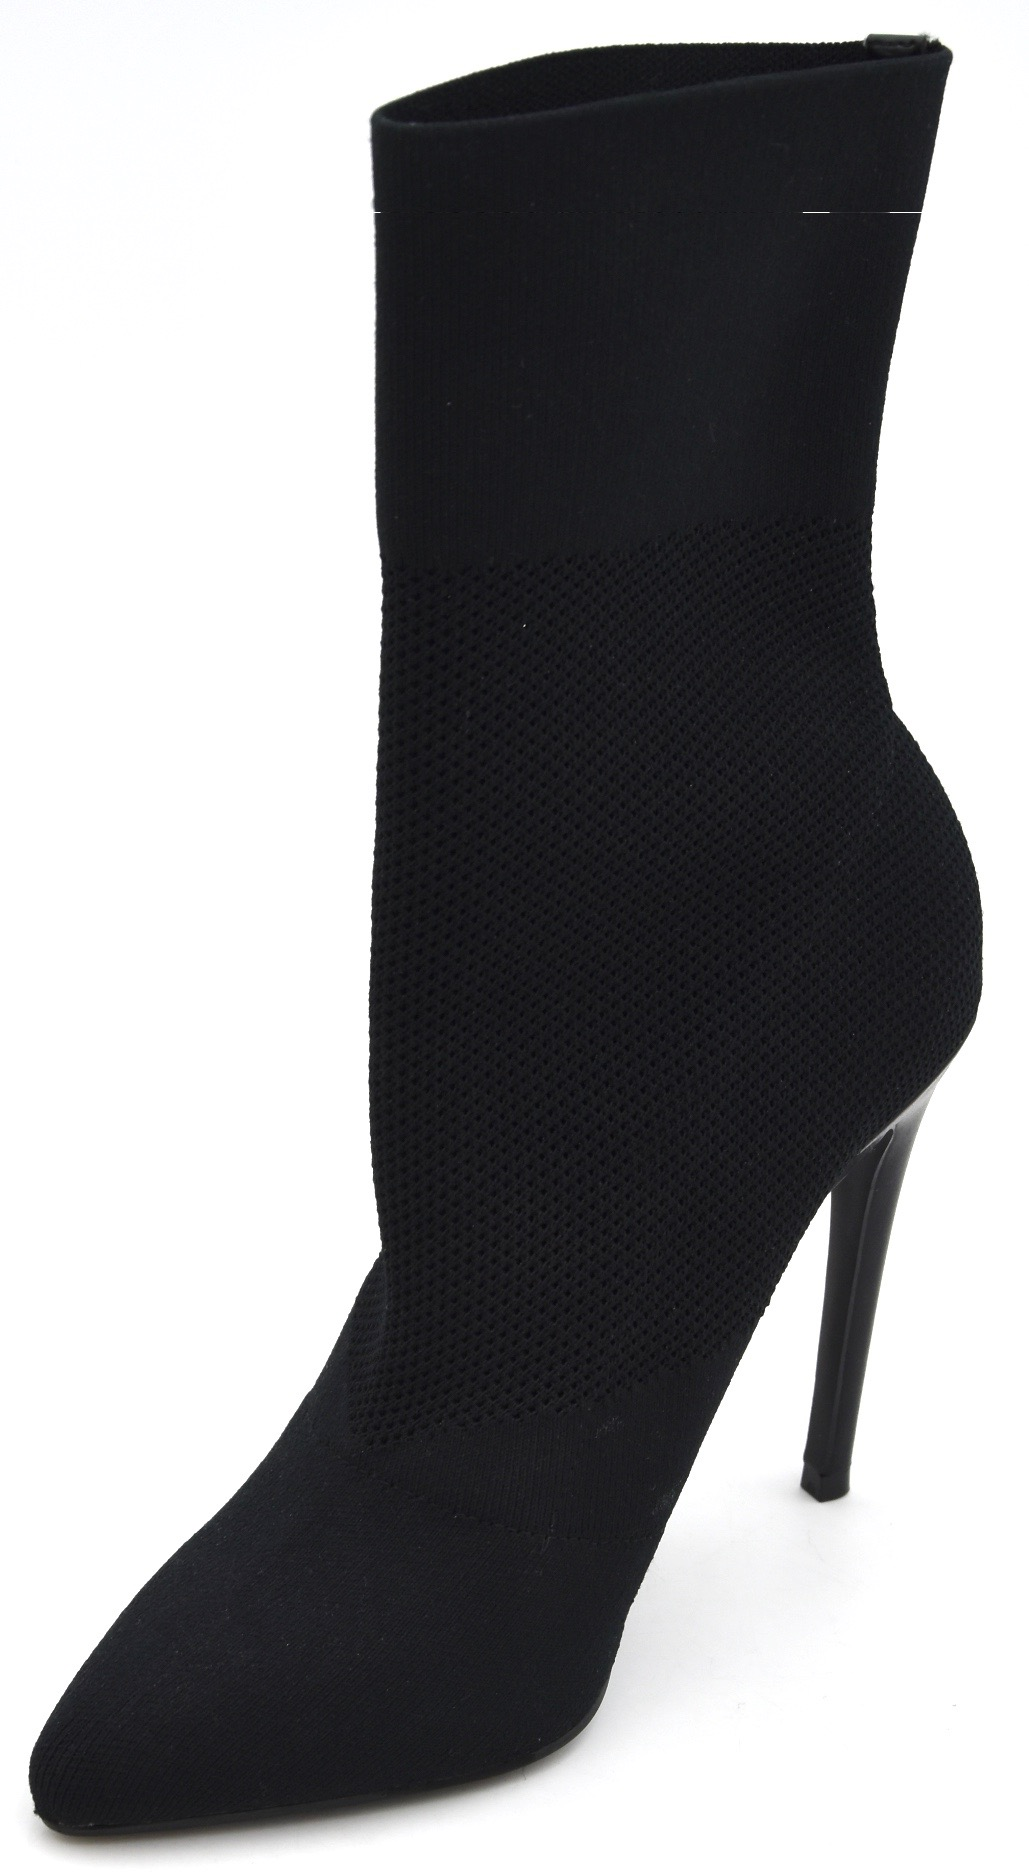 hot sale online b1cc8 558a2 Image is loading STEVE-MADDEN-WOMAN-ANKLE-BOOTS-BOOTIES-WINTER-SYNTHETIC-